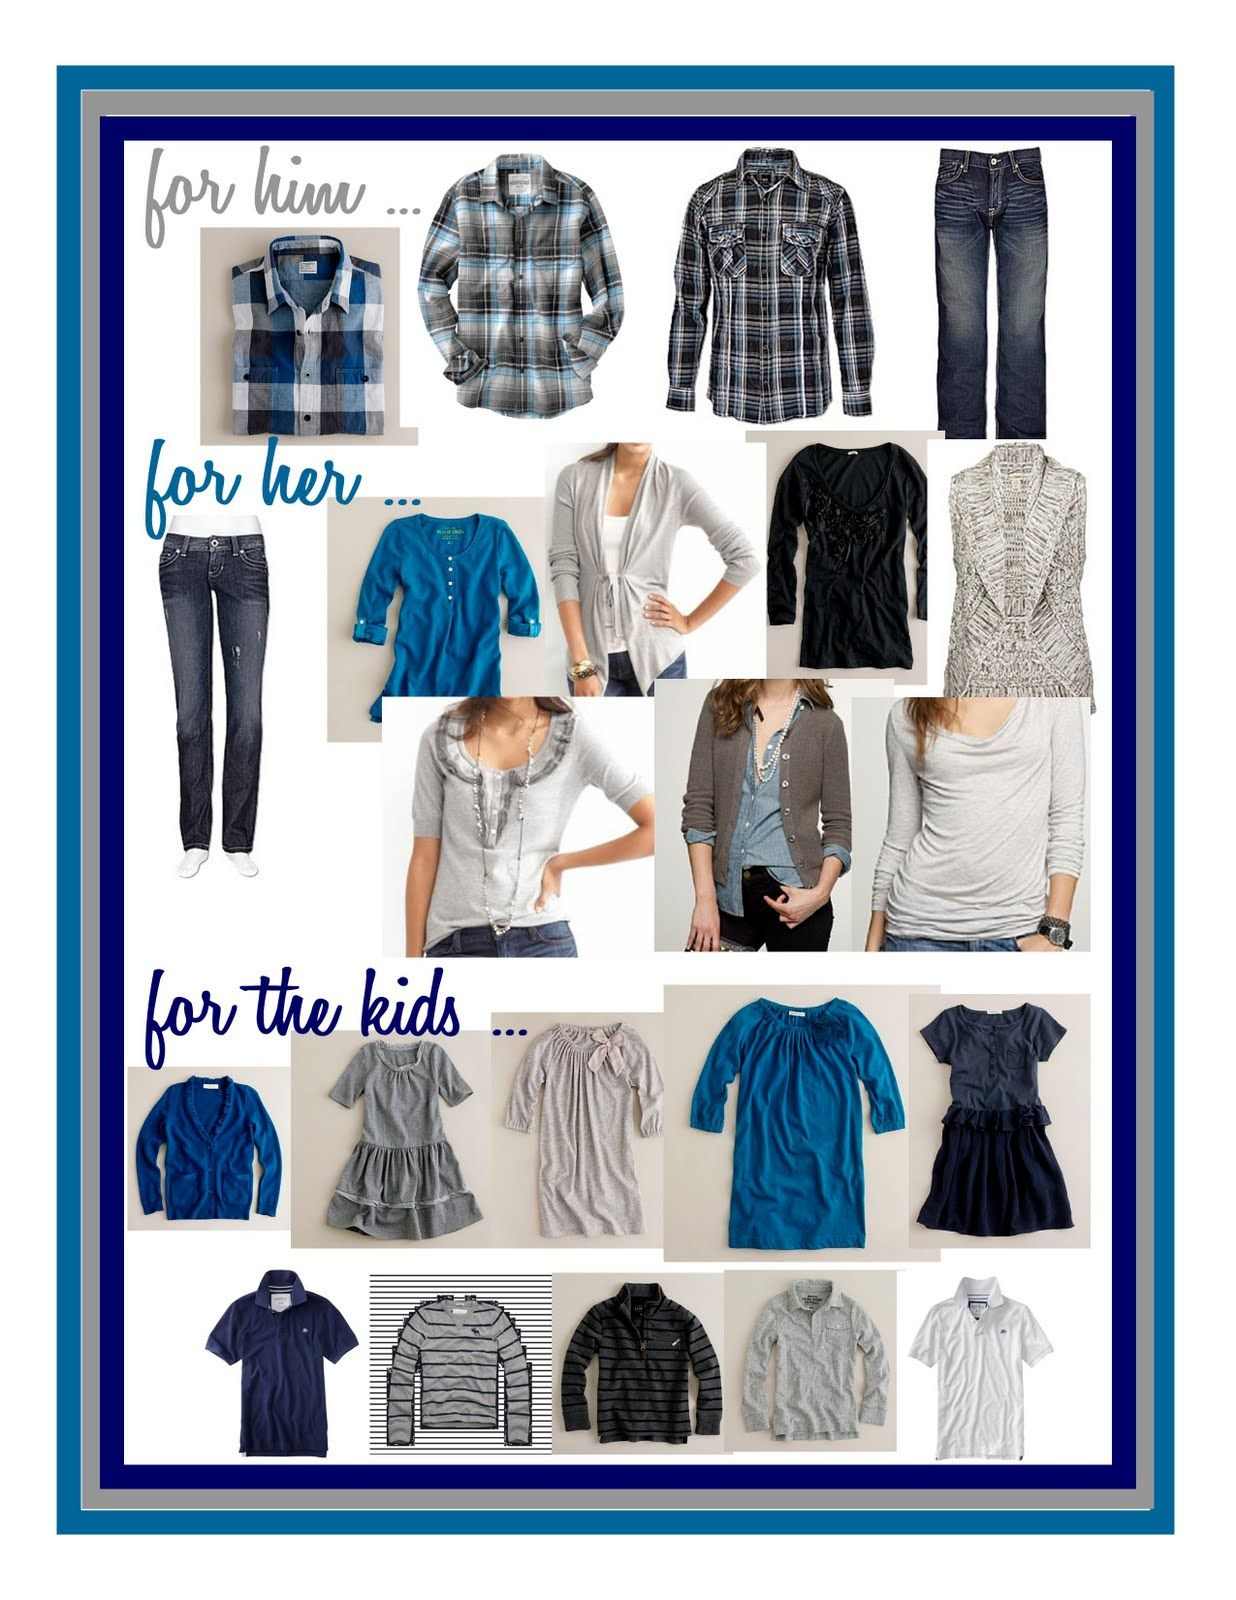 What to wear for a family photo shoot?